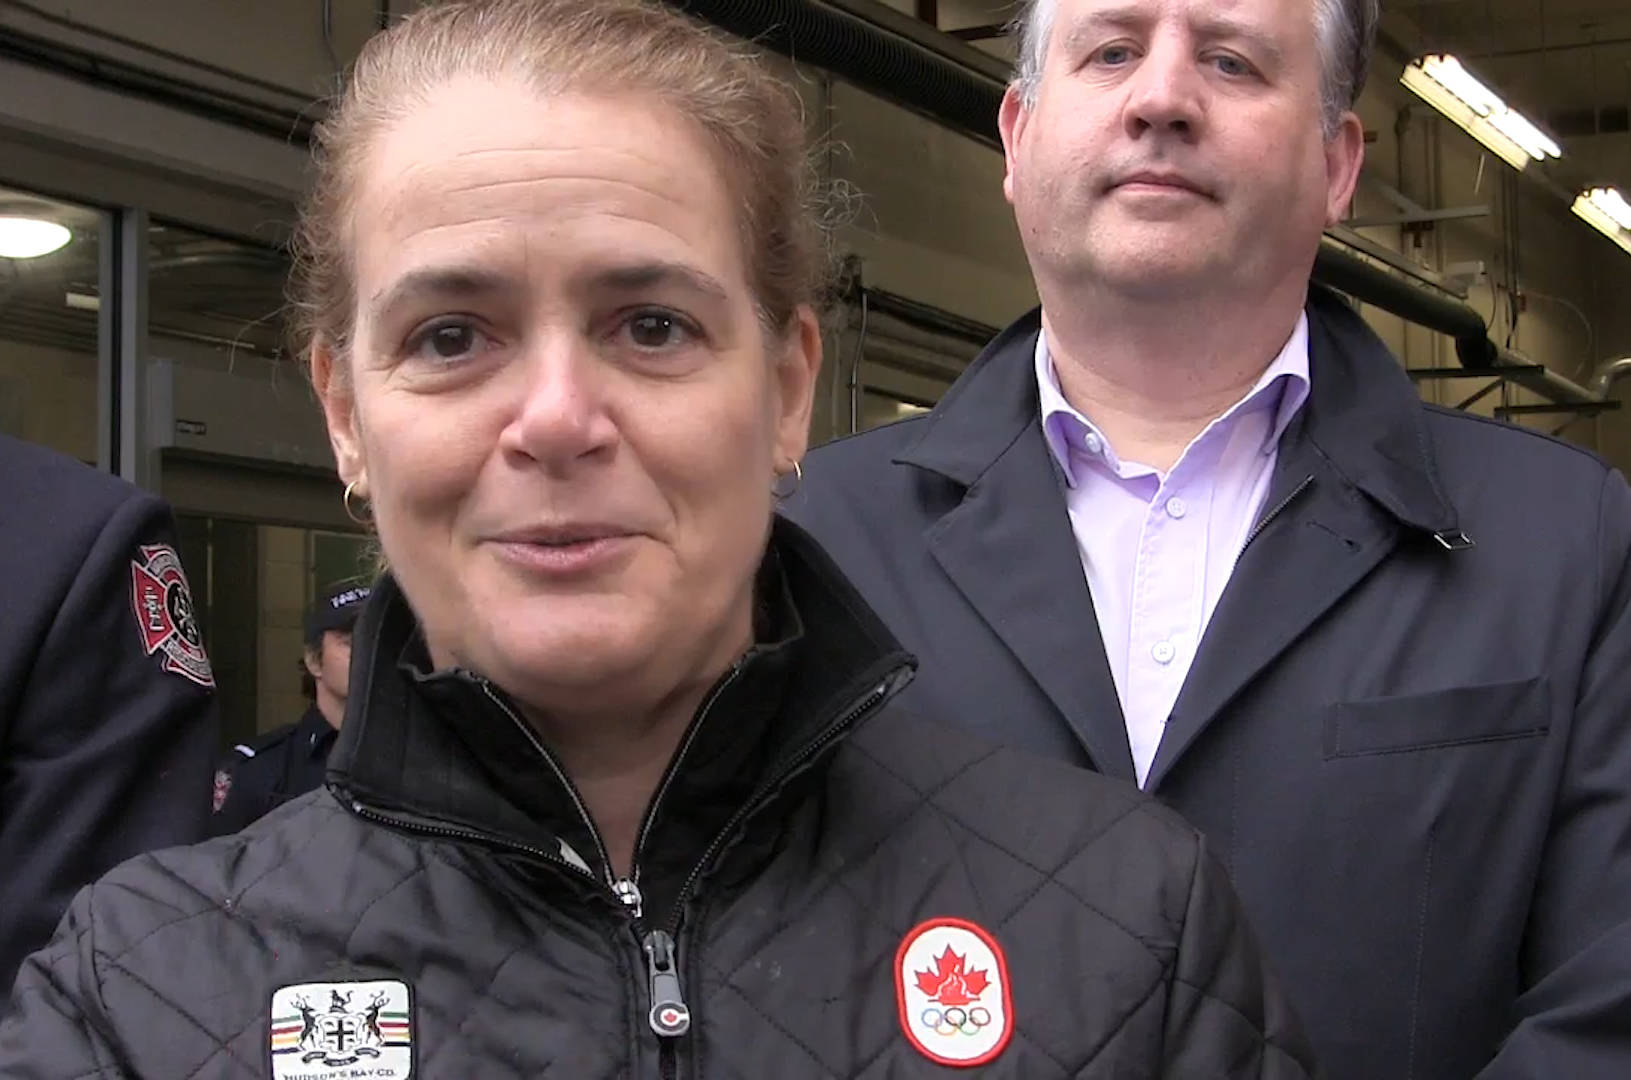 Canada's Governor General Julie Payette met at a fire hall in downtown Vancouver on Feb. 22, 2020, with firefighters and police officers as well as officials including Mayor Kennedy Stewart. (The Canadian Press photo)